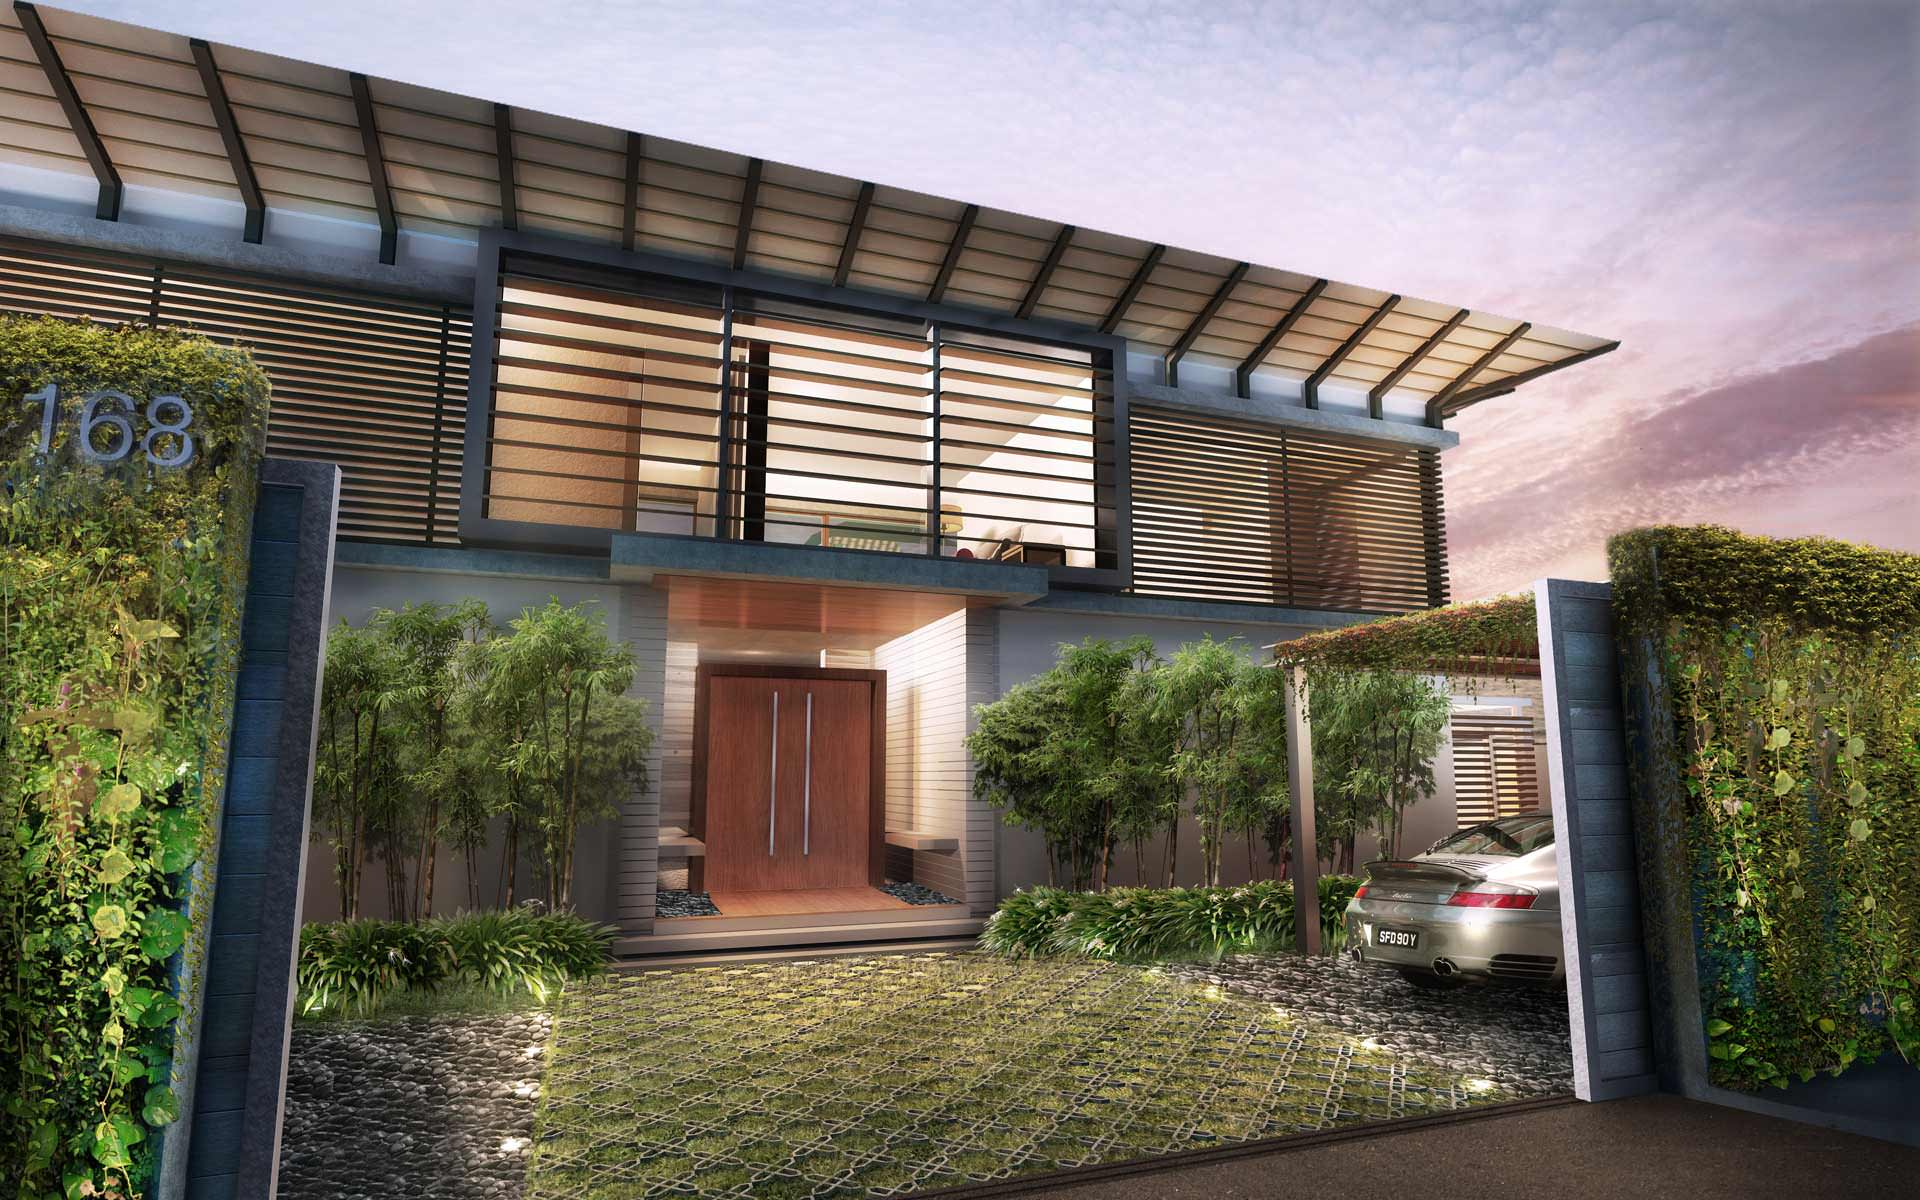 4 Bedroom Villa – Pavilion